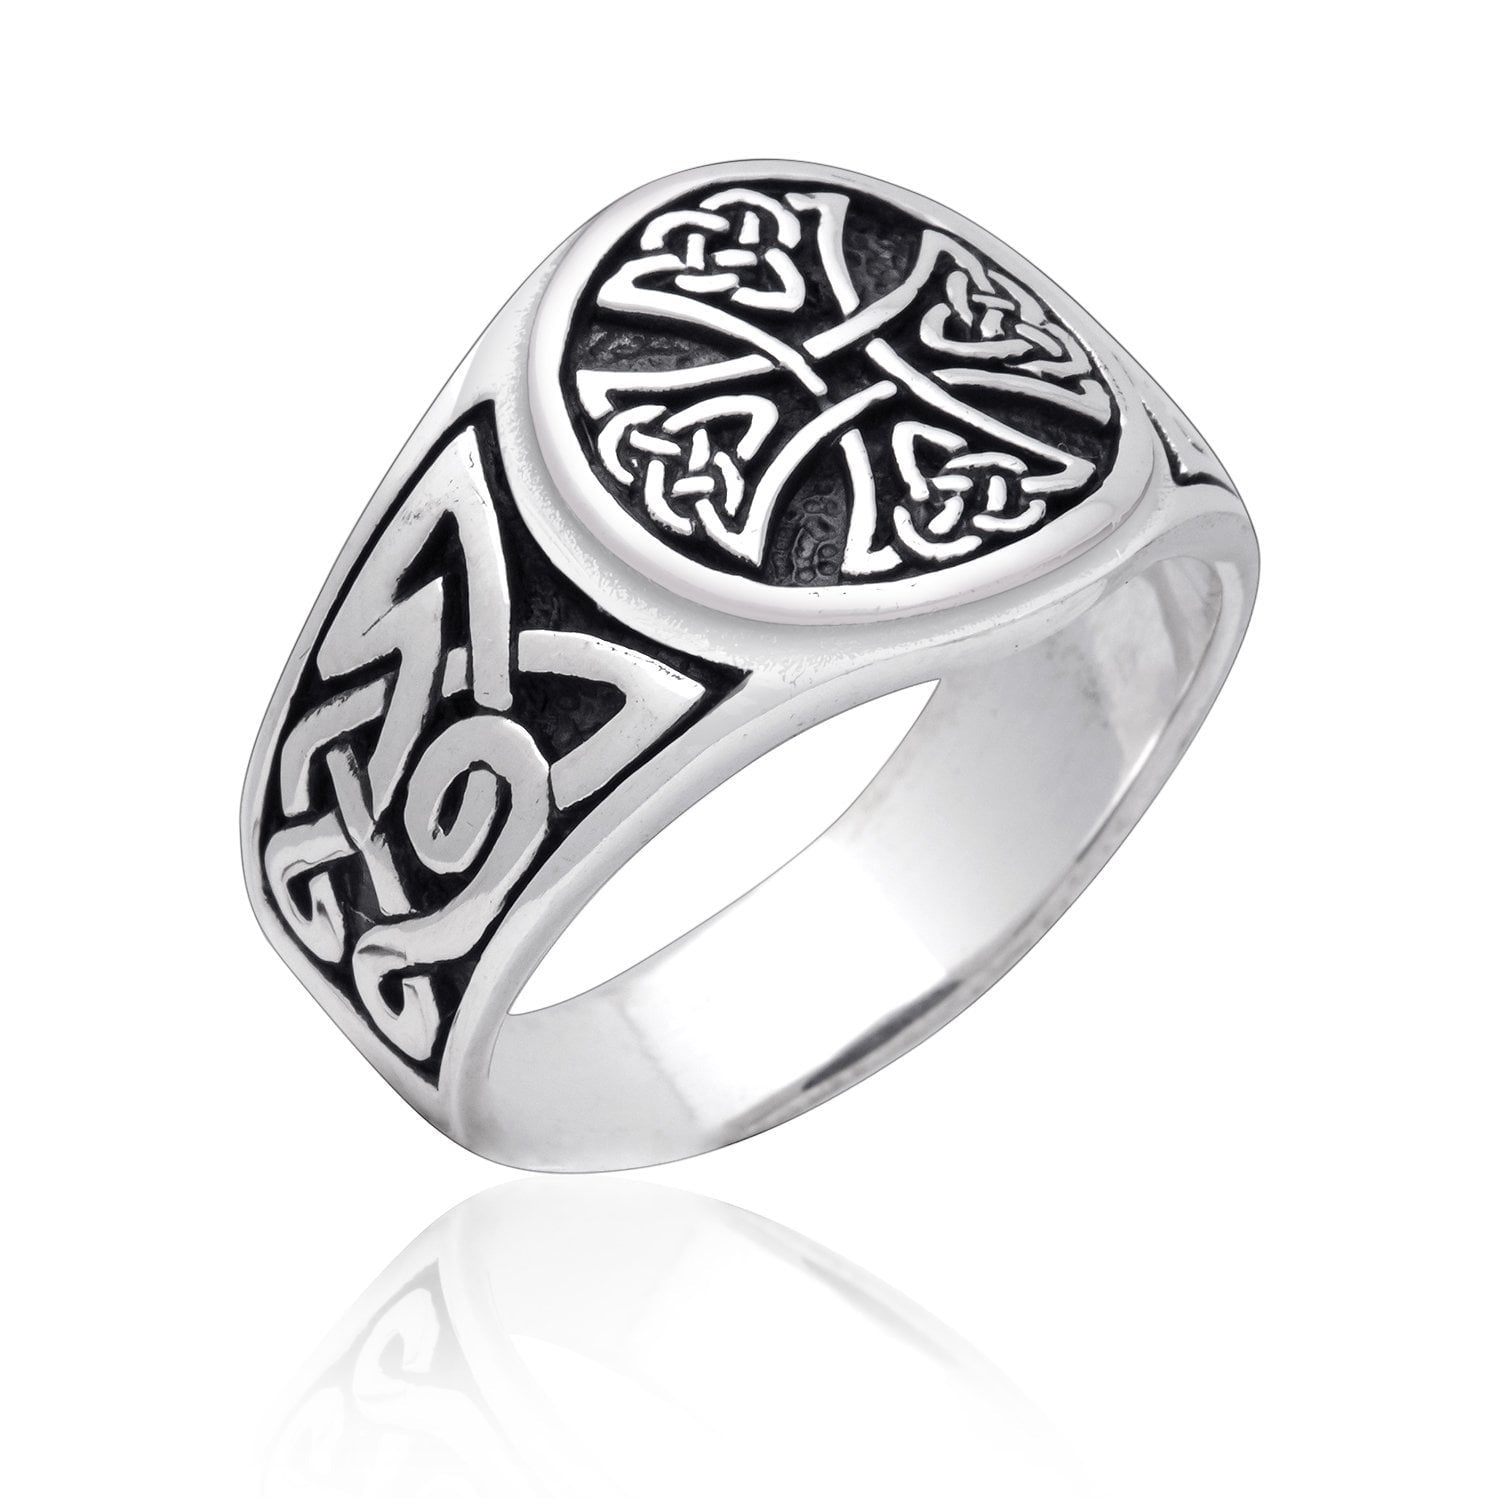 for com amazon mens wedding ladies silver dp ring sterling irish women claddagh rings jewelry